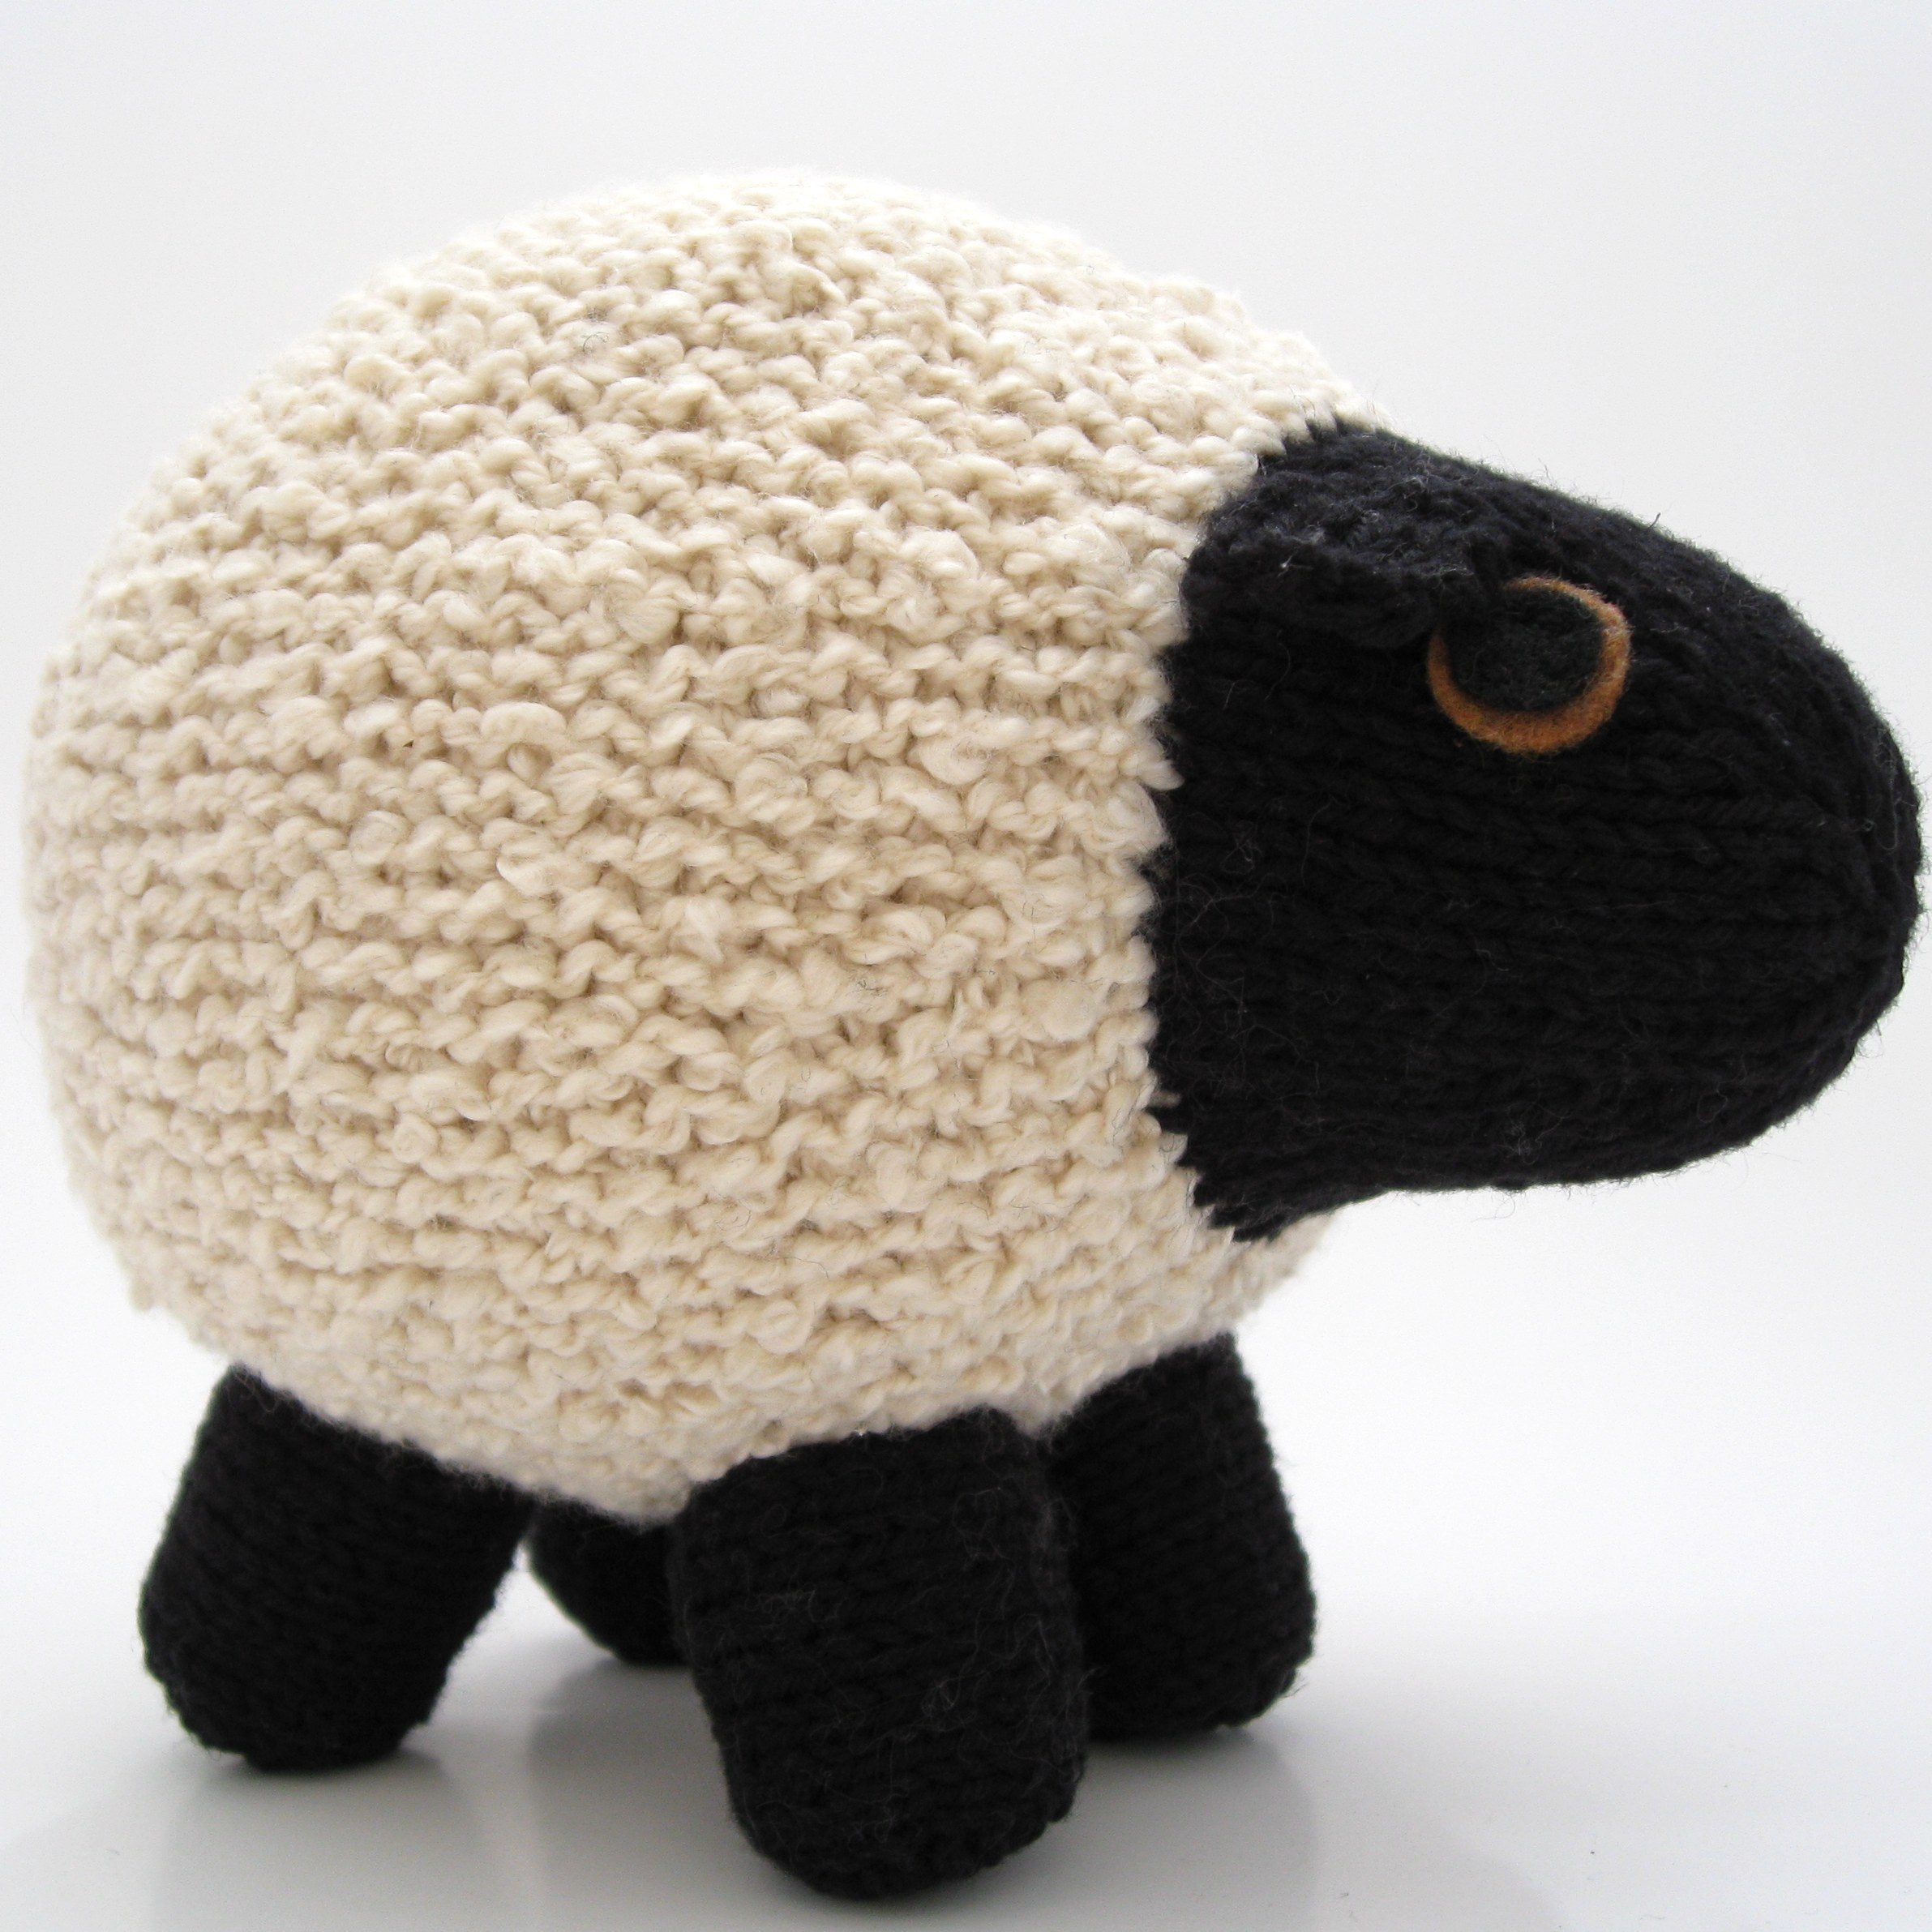 Round sheep pattern hints and tips round sheep pattern hints and tips bankloansurffo Gallery